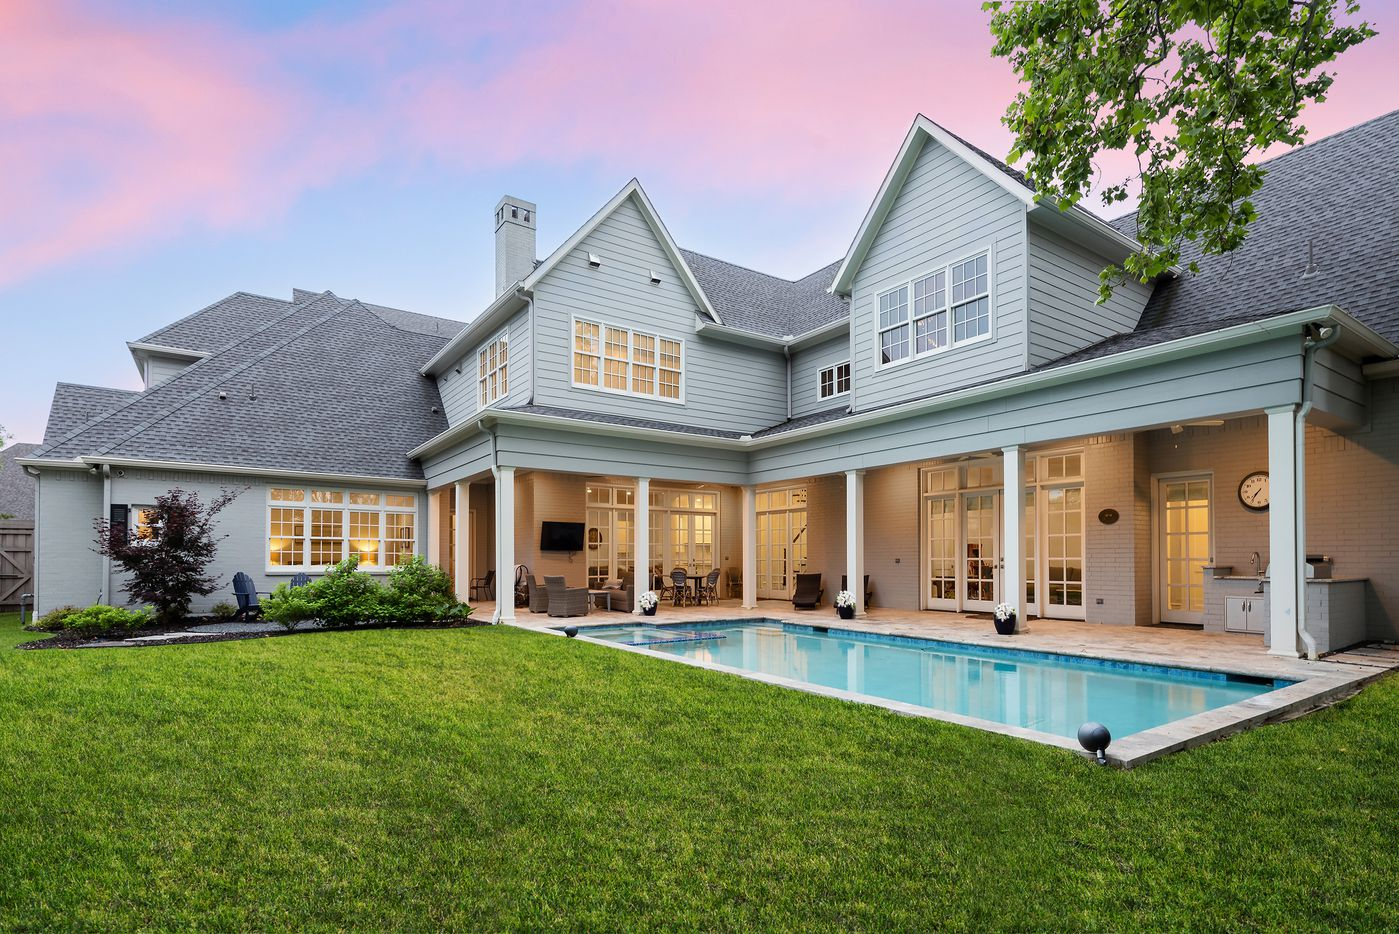 Take a look at the home at 5807 Elderwood Drive in Dallas.